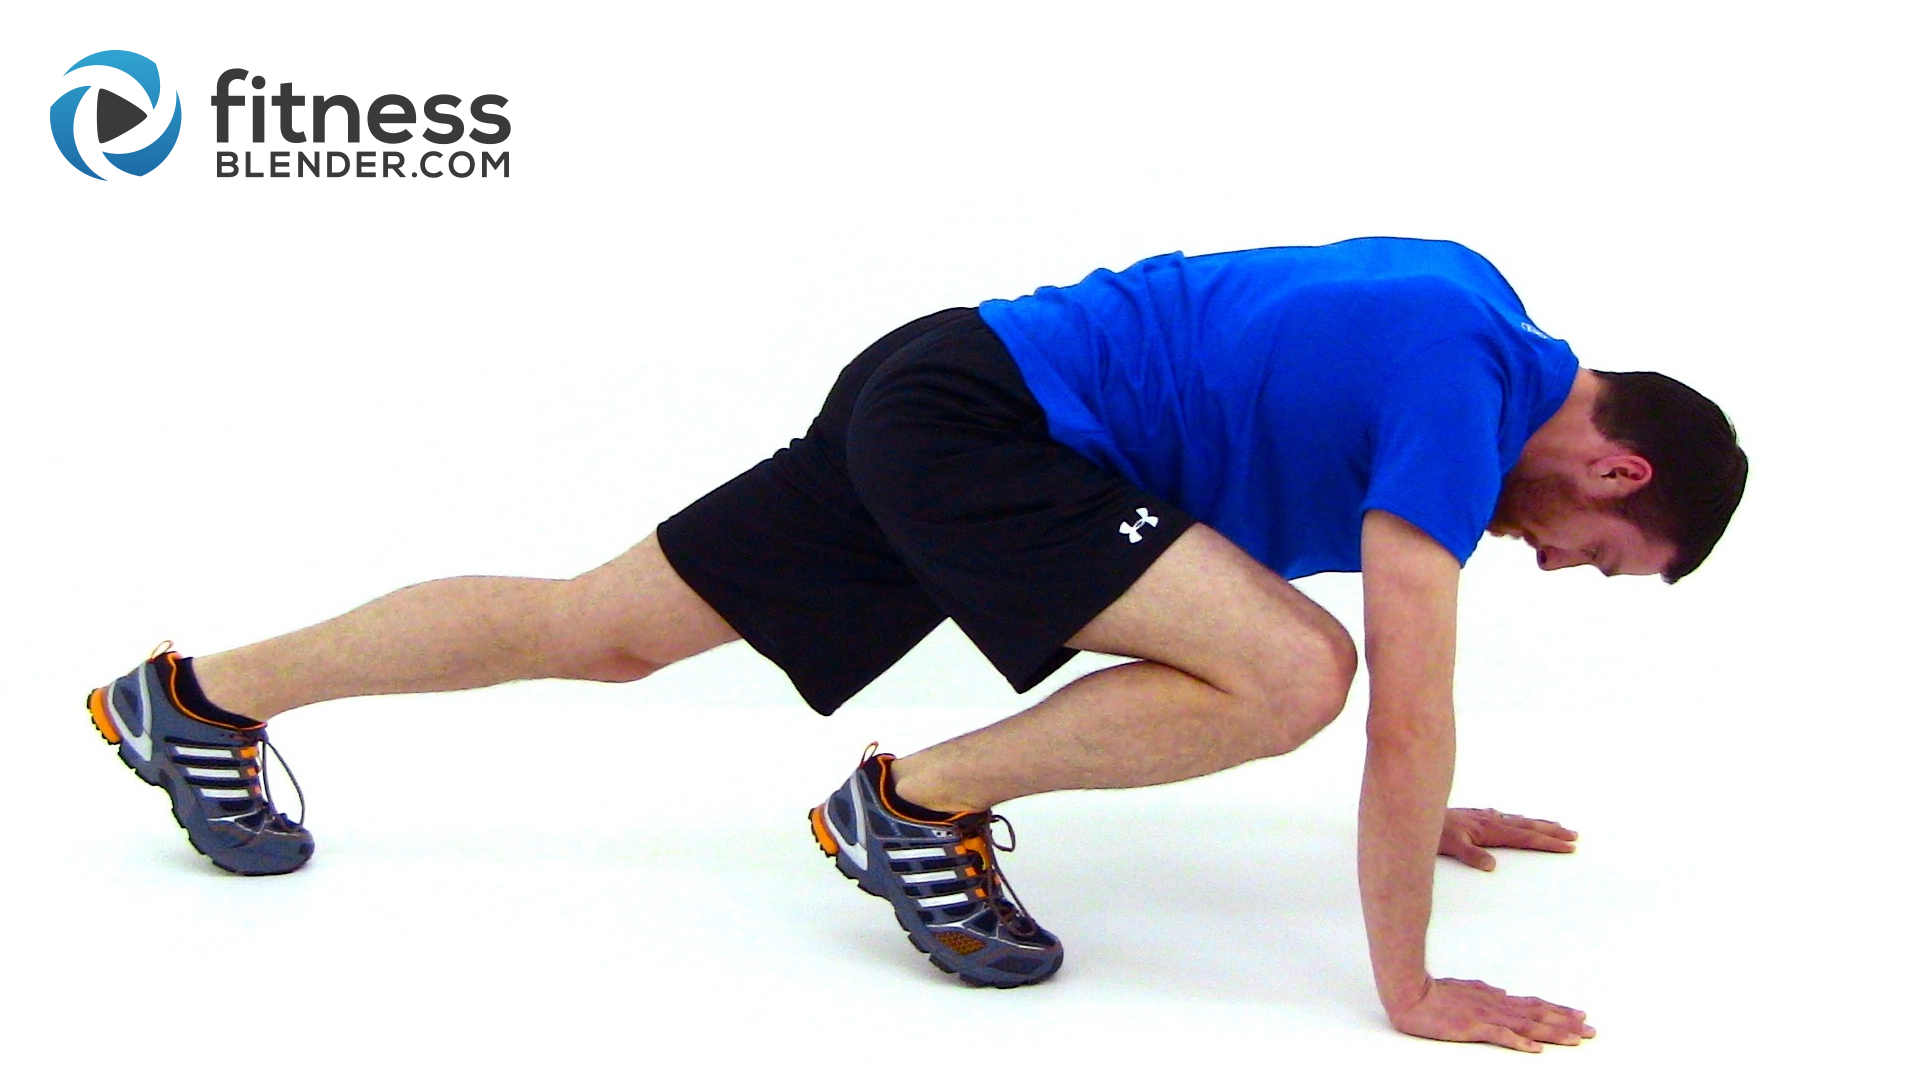 Pyramid Hiit Workout Fun With Numbers Fitness Blender Workouts Timers For Tabata And Circuit Training Are Included